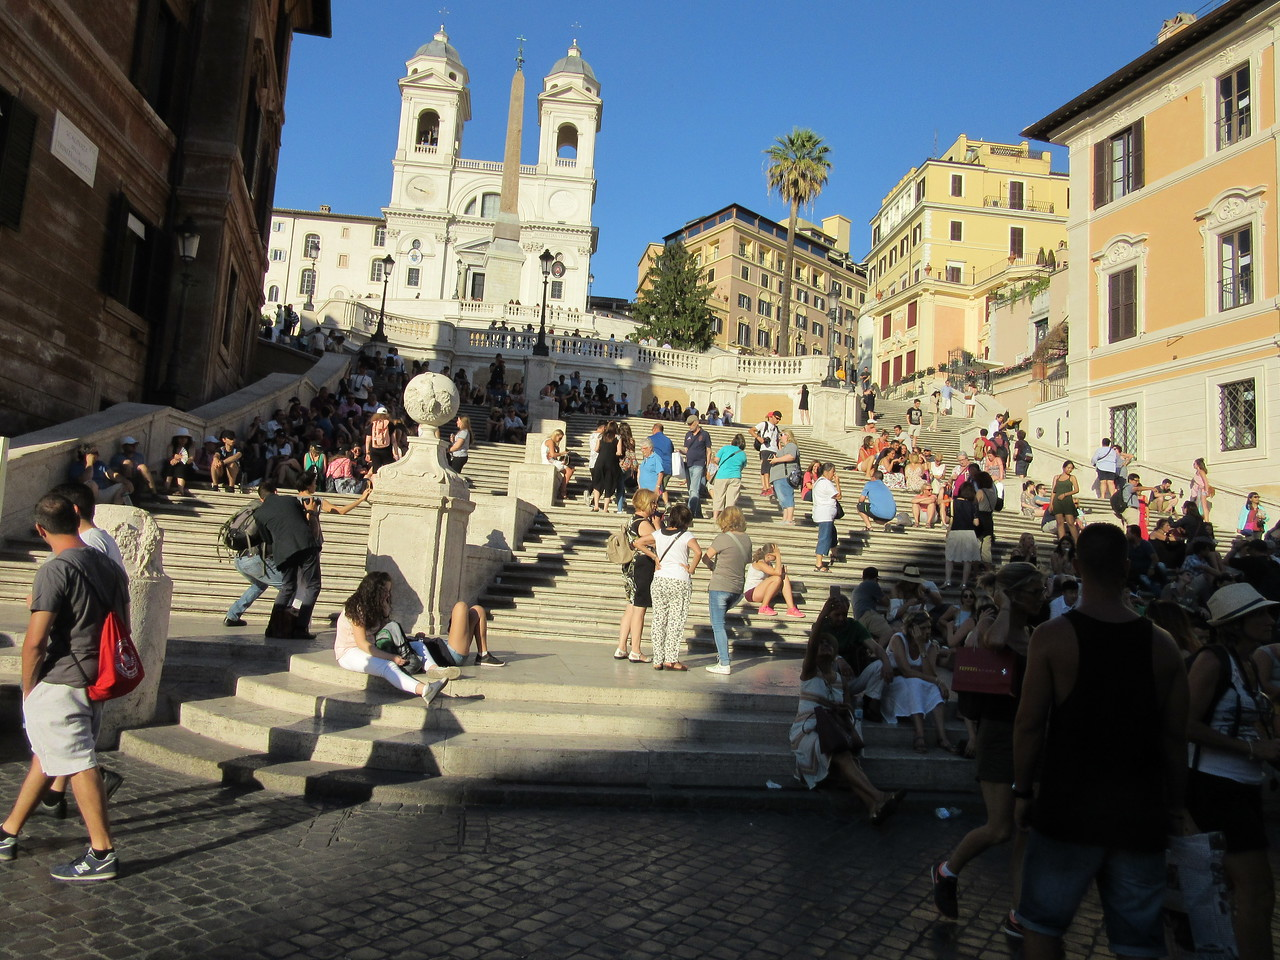 The Spanish Steps.  The Spanish Steps are some of the most romantic steps in the world, and are a site of many selfies and picture perfect moments. Whether you sit and watch the world go by, or bring a picnic, these steps are a great location to rest and recover during a busy day of sightseeing. The 135 steps date back to 1725 and were designed by Franceso de Sanctis and have been an iconic landmark of Rome ever since.